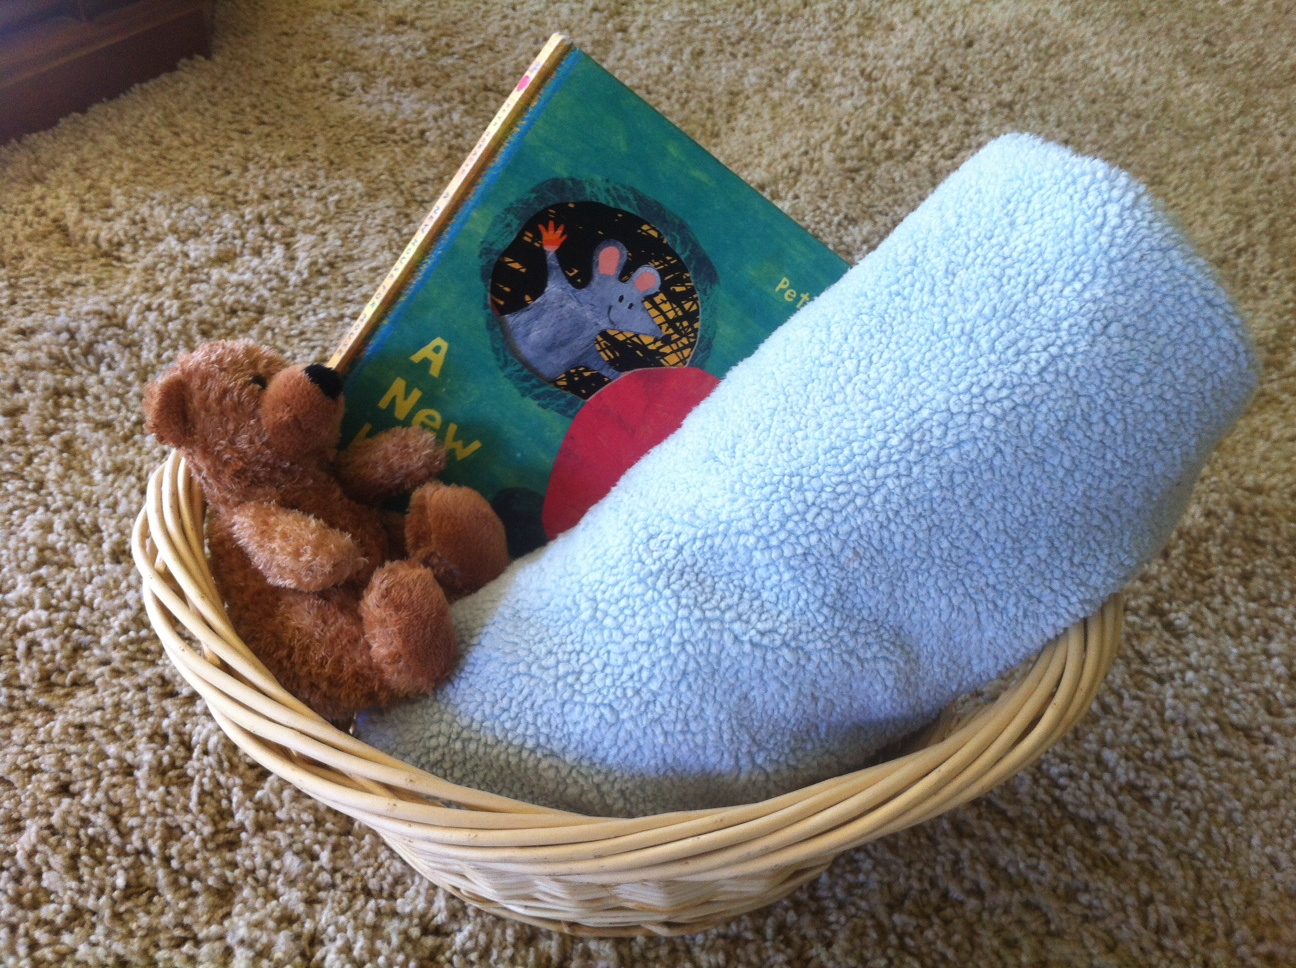 Soothing Baskets are powerful tools to allow your children begin the work of learning self-regulation…  And they buy a little bit of peace during the busy days of parenting.